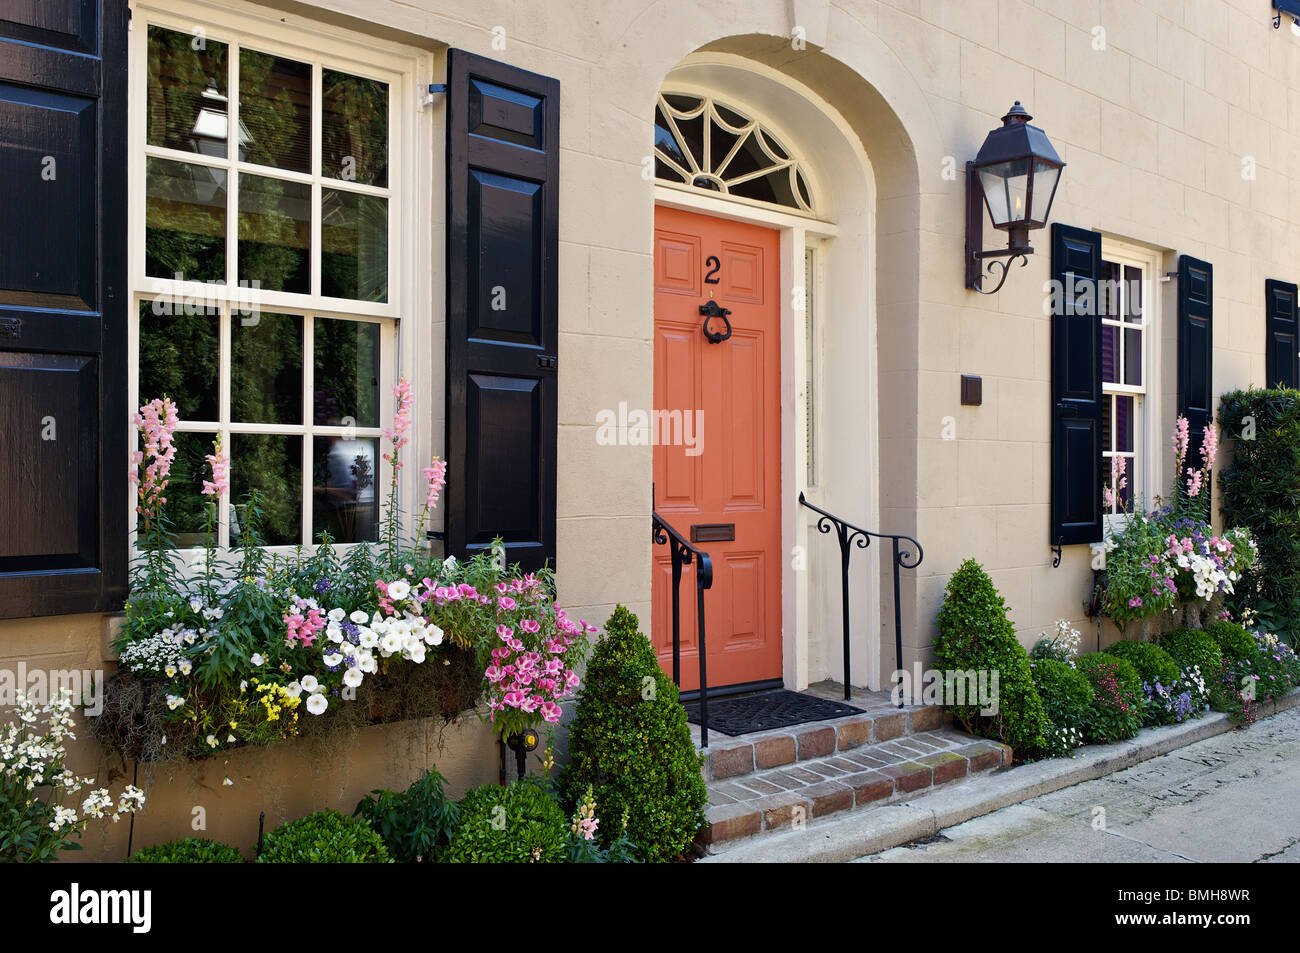 Detail of Door and Windows of the Historic Home in Charleston, South Carolina - Stock Image